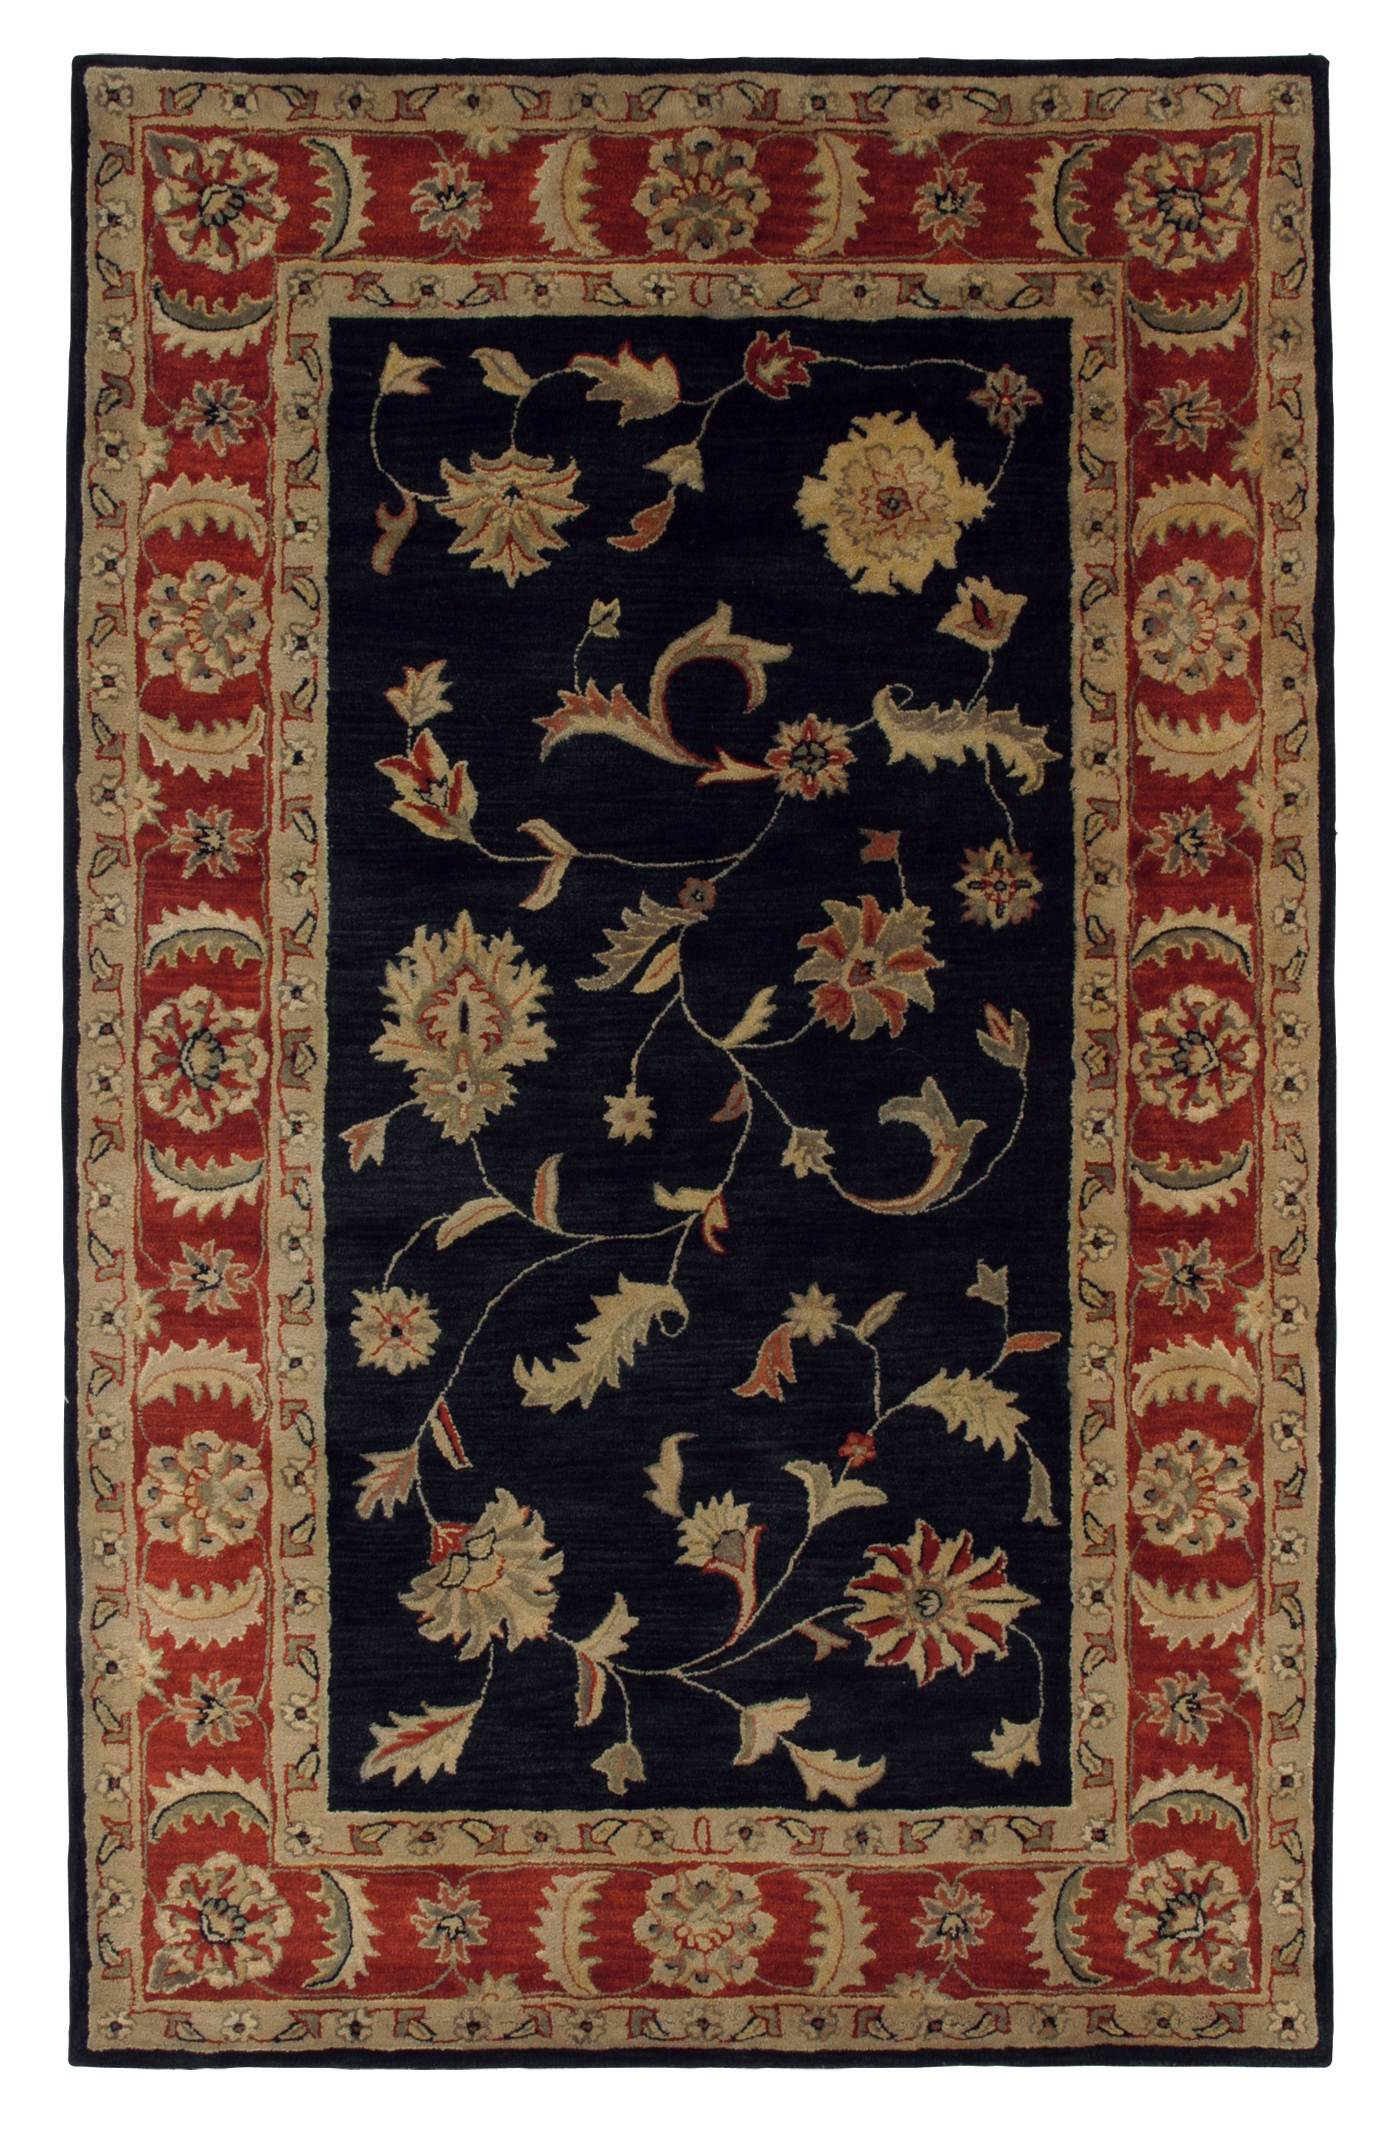 Dynamic Rugs Charisma Classic Blk/rd 1401 Area Rug